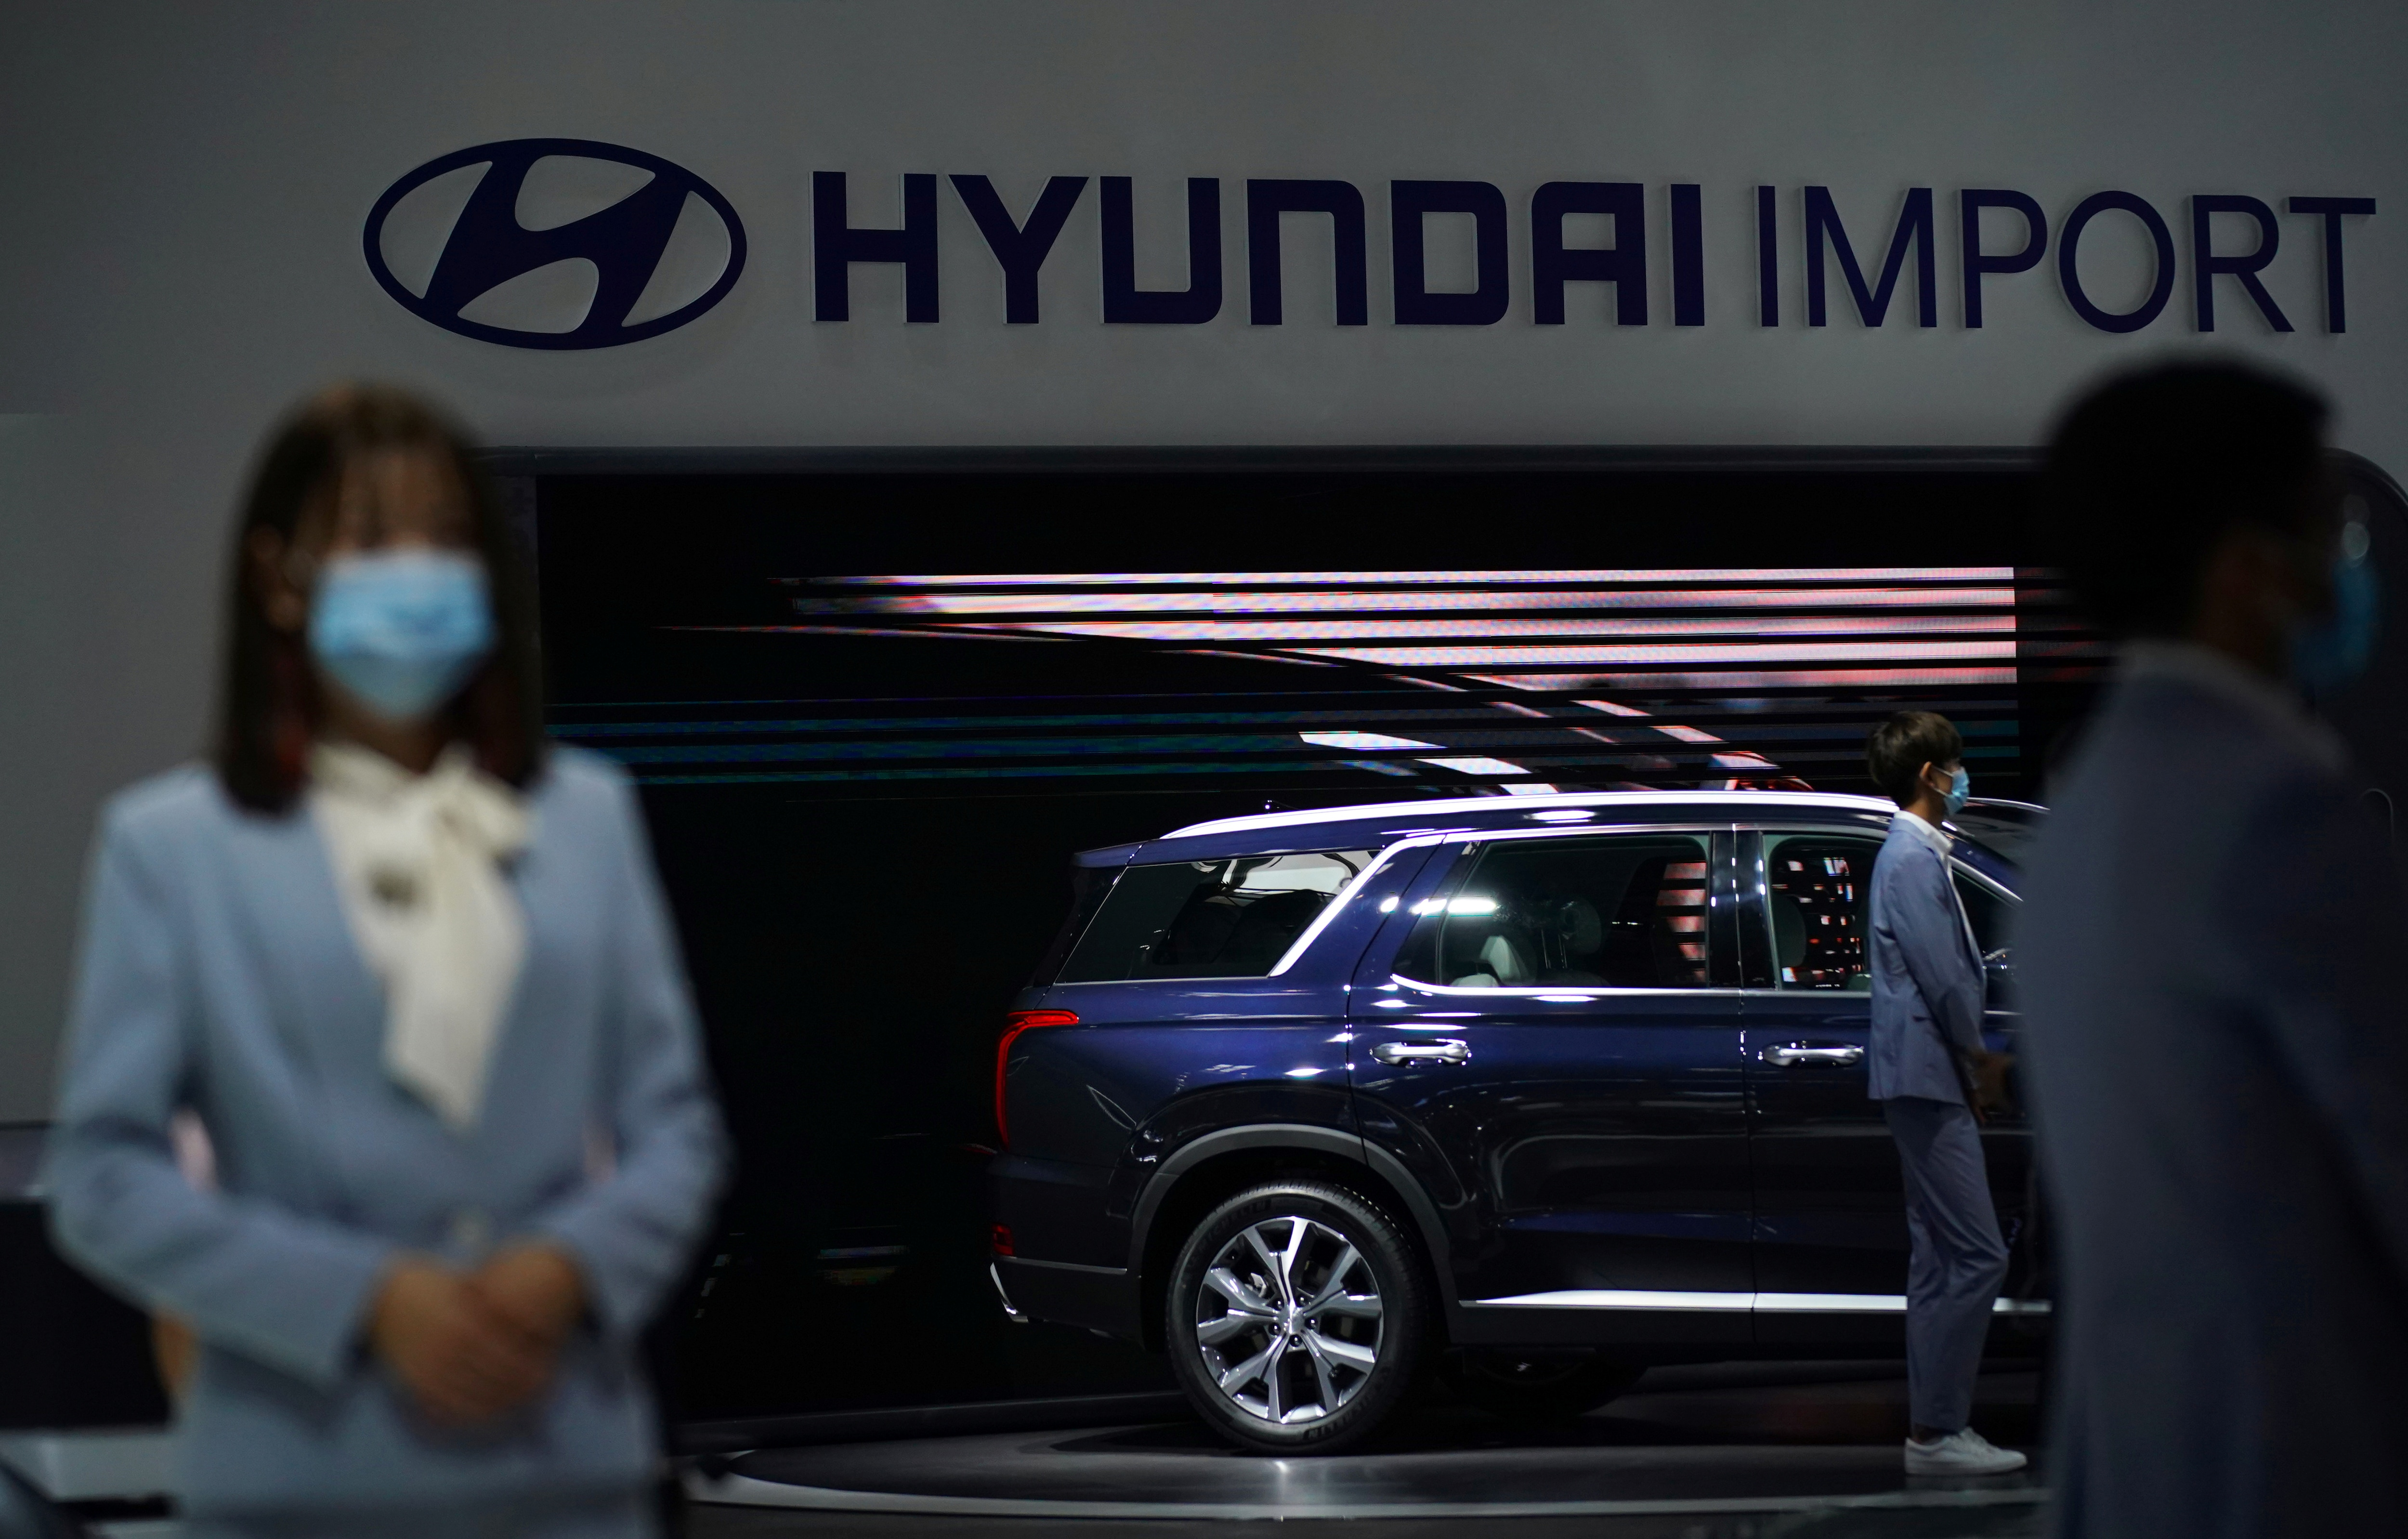 Staffers wearing face masks are seen at a Hyundai booth. (REUTERS)